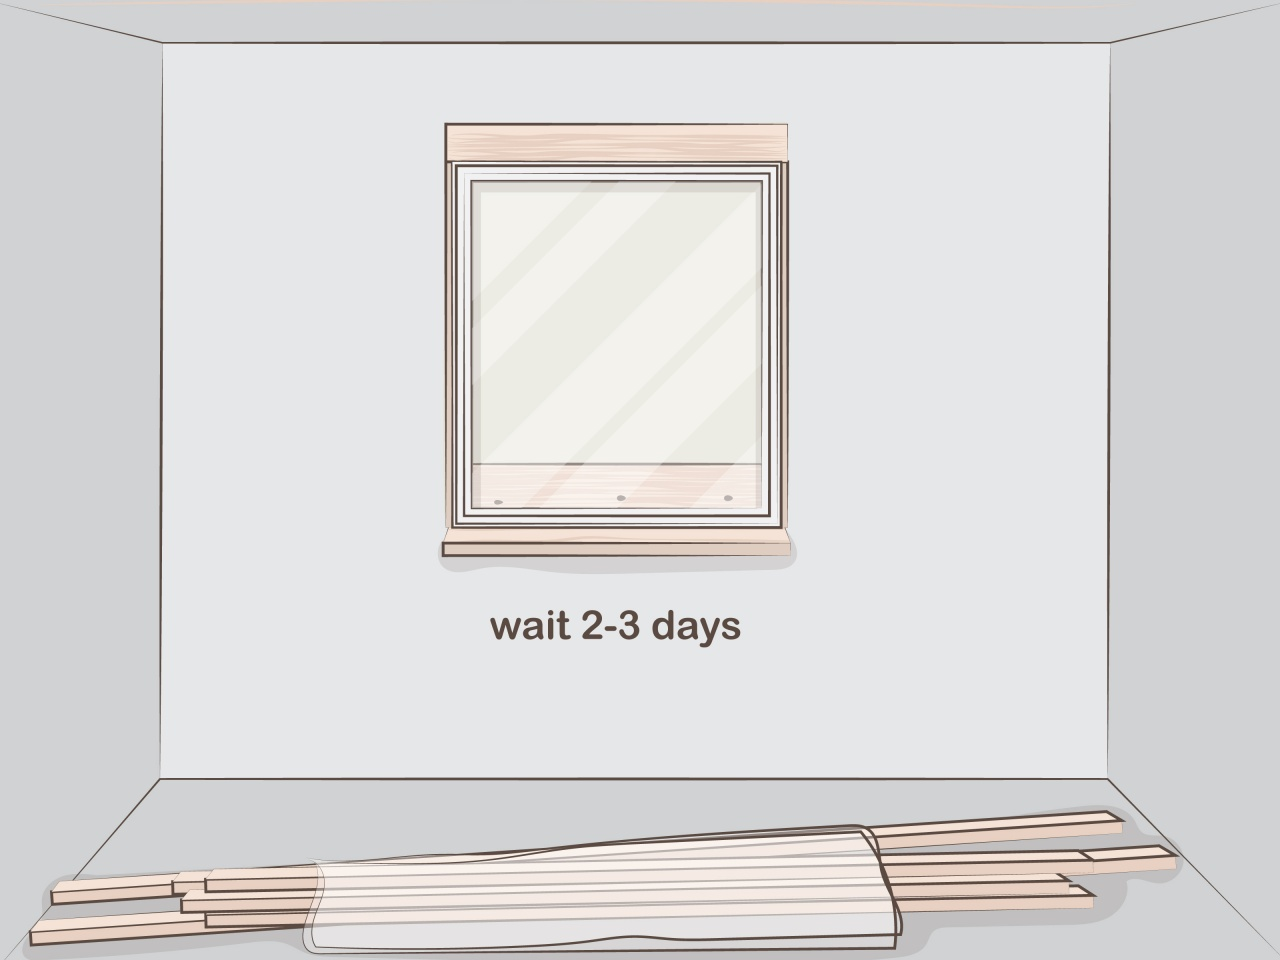 Installing A New Window In An Existing Wall With Vinyl Siding How To Install Basement Windows Wikihow Equalmarriagefl From